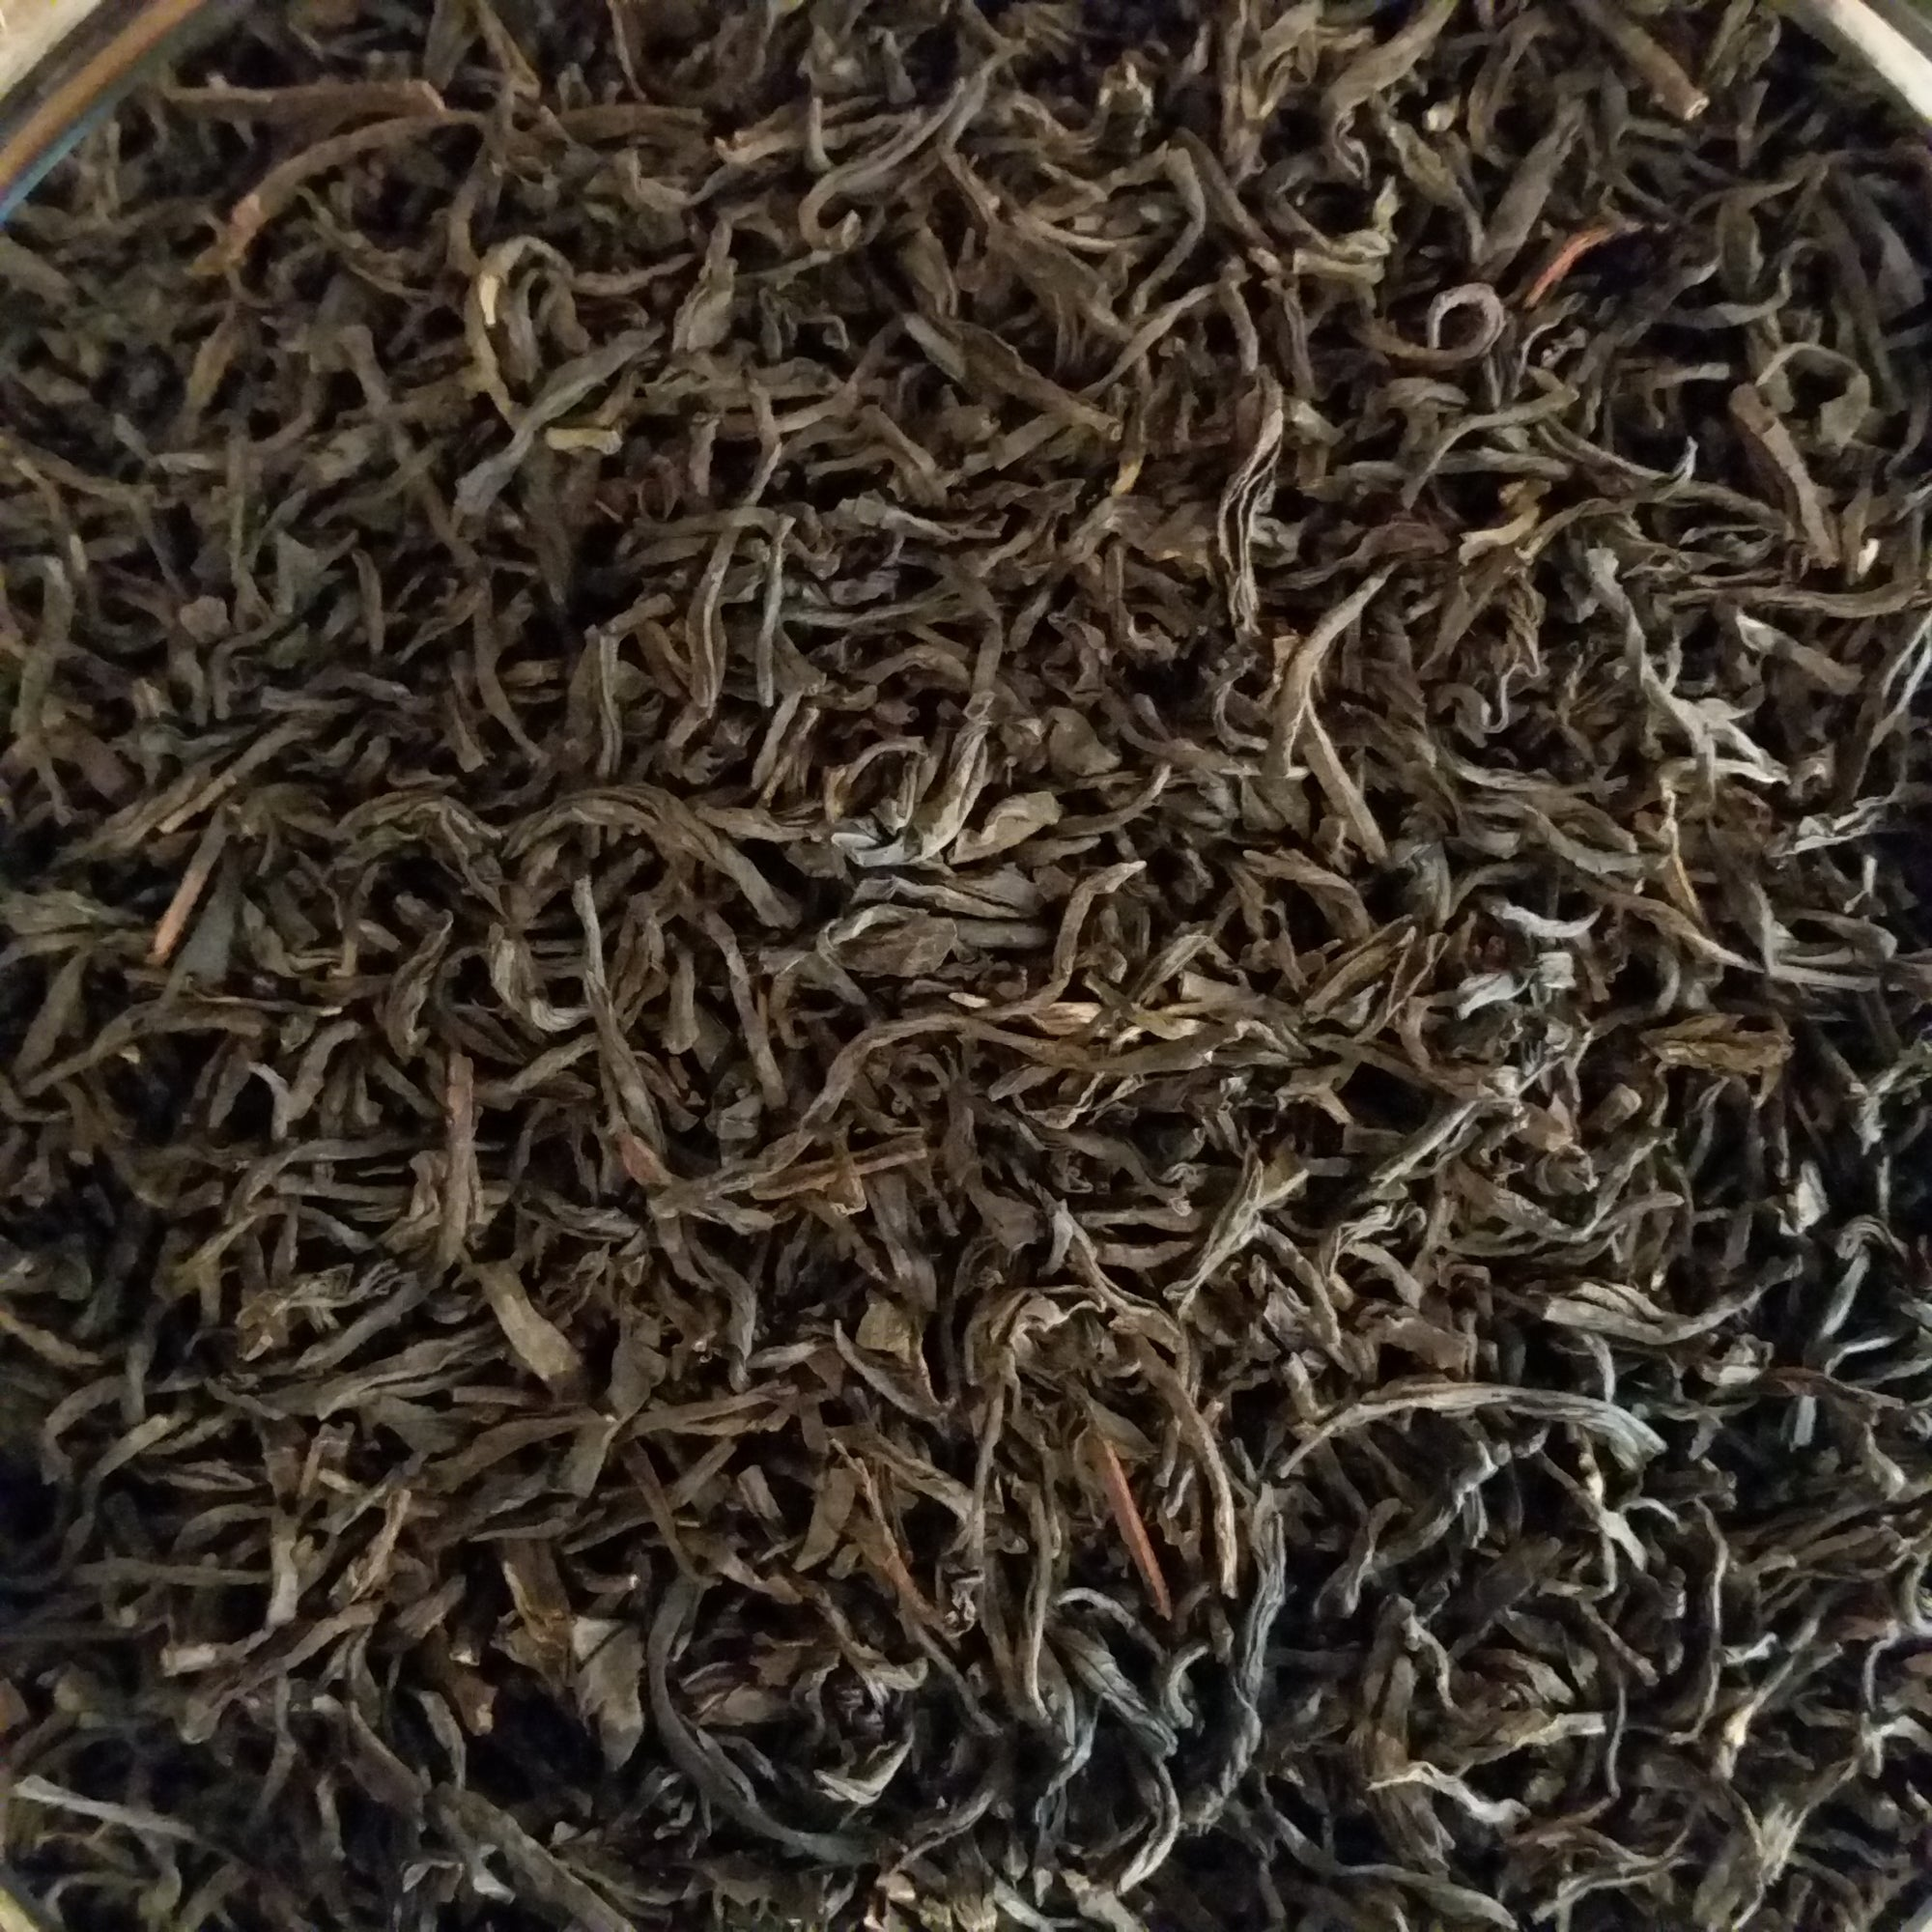 Assam - Orange Pekoe, Black Estate Tea CERTIFIED ORGANIC